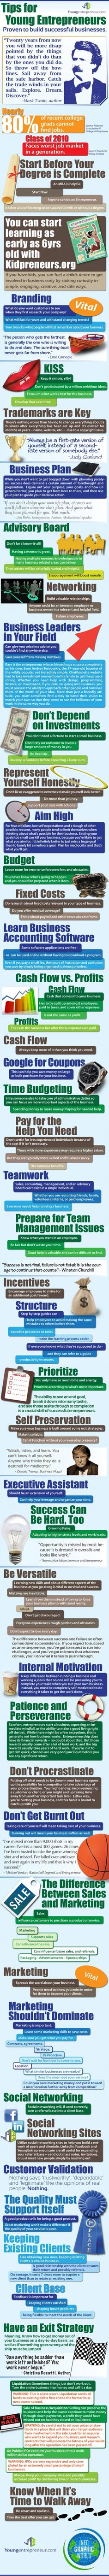 Business Ideas For Young Entrepreneurs